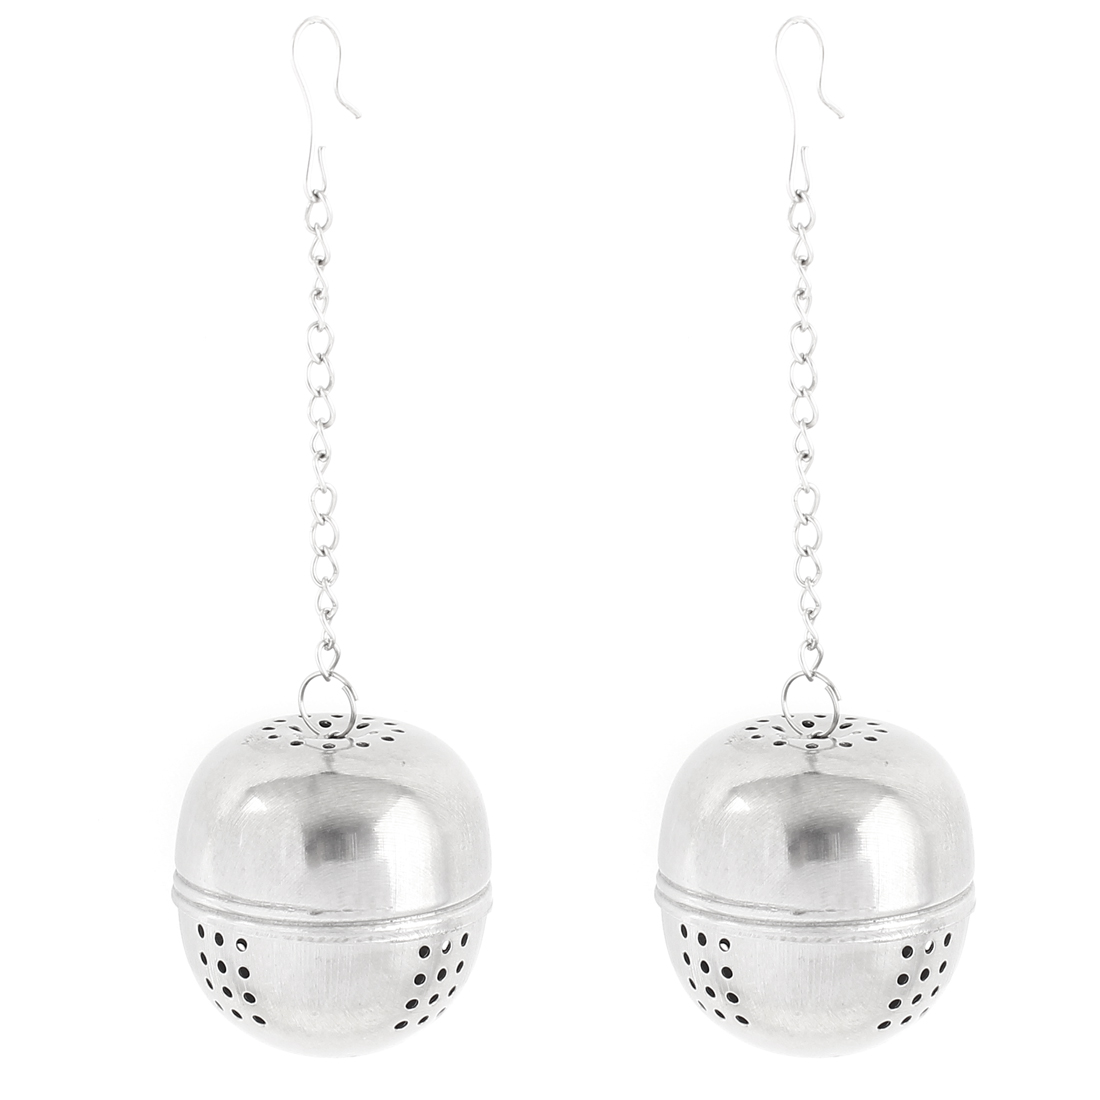 2pcs 4cm Dia Stainless Steel Ball Strainer Tea Leaf Spice Perfume Infuser